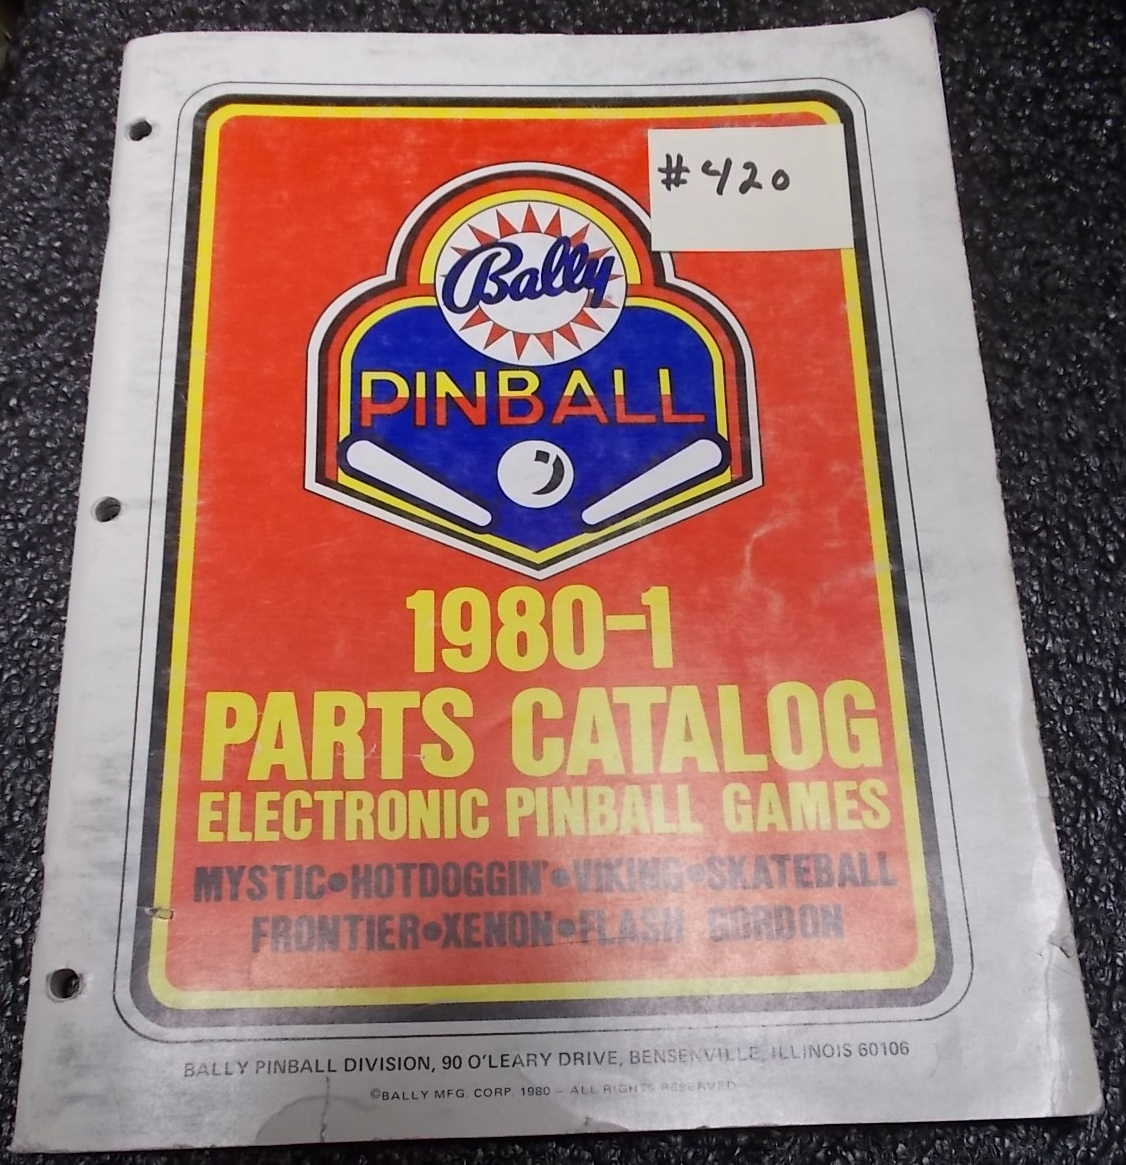 to buy run shoes performance sportswear BALLY Pinball Machine Game 1980-1 Parts Catalog #420 for ...